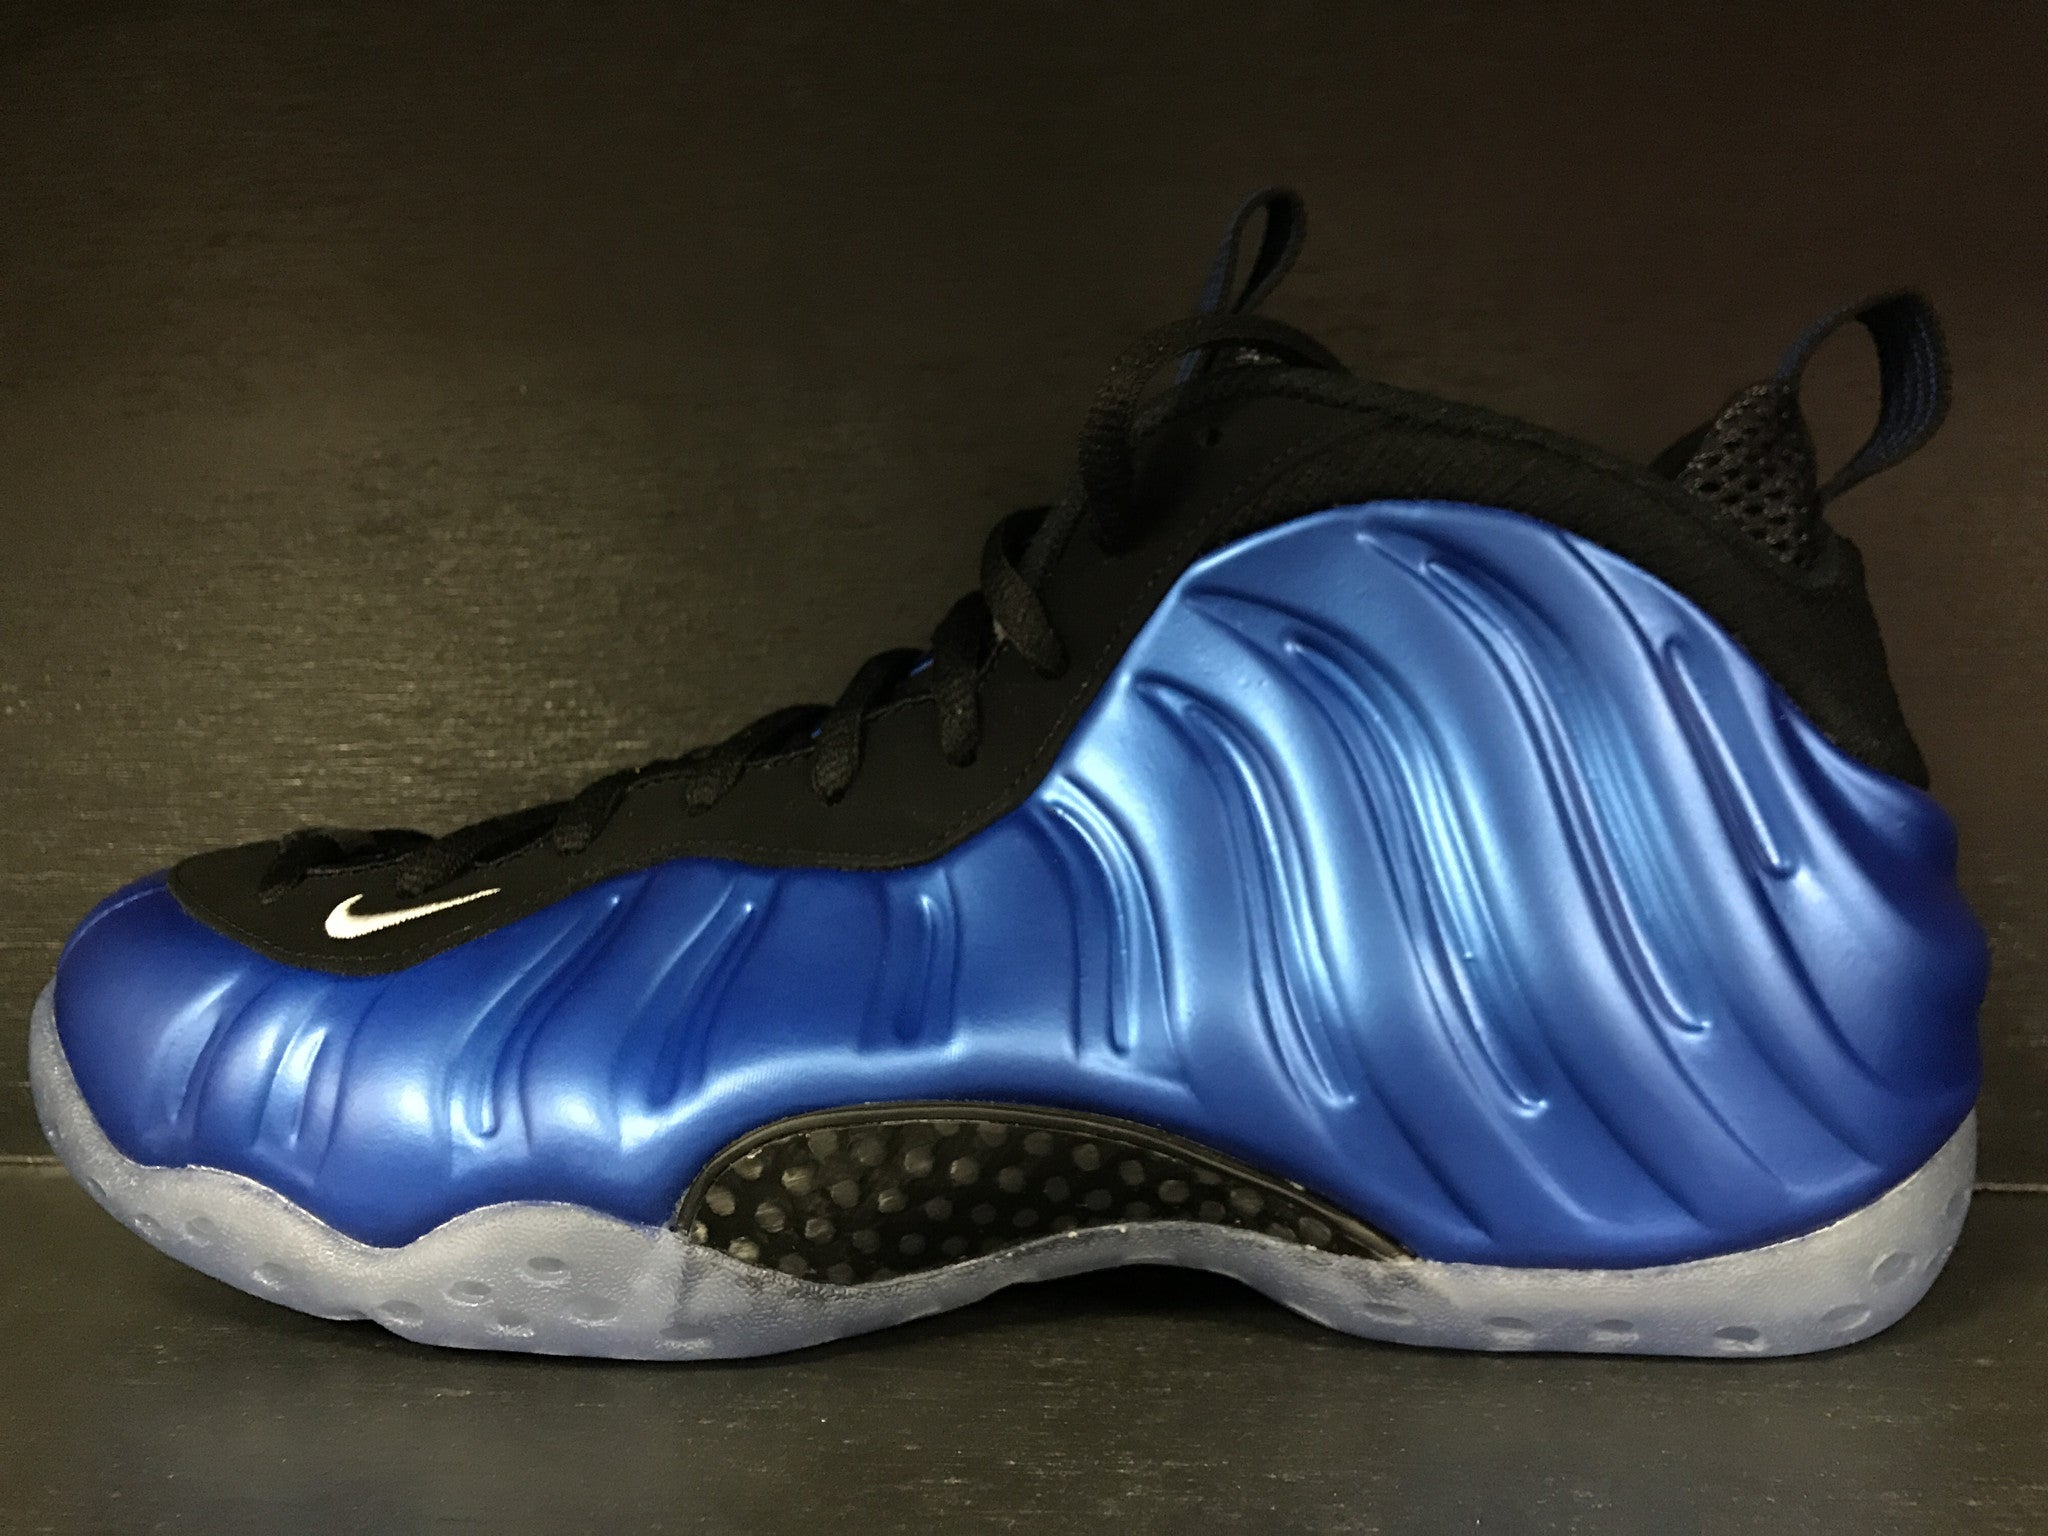 Nike Air Foamposite One XX 'Royal'